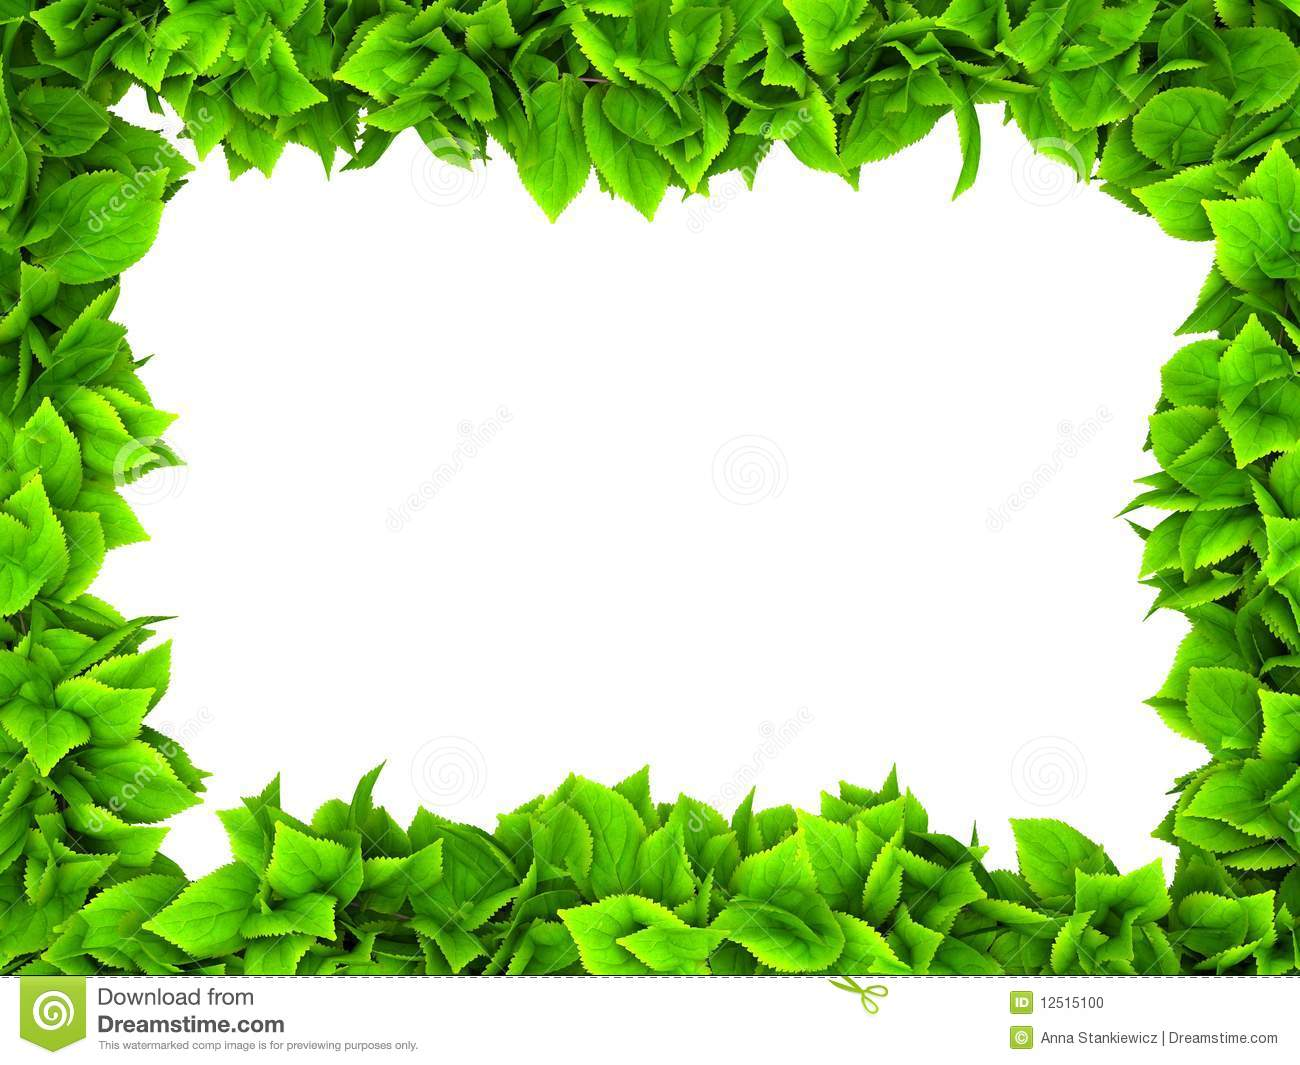 leafy green border stock illustration illustration of. Black Bedroom Furniture Sets. Home Design Ideas